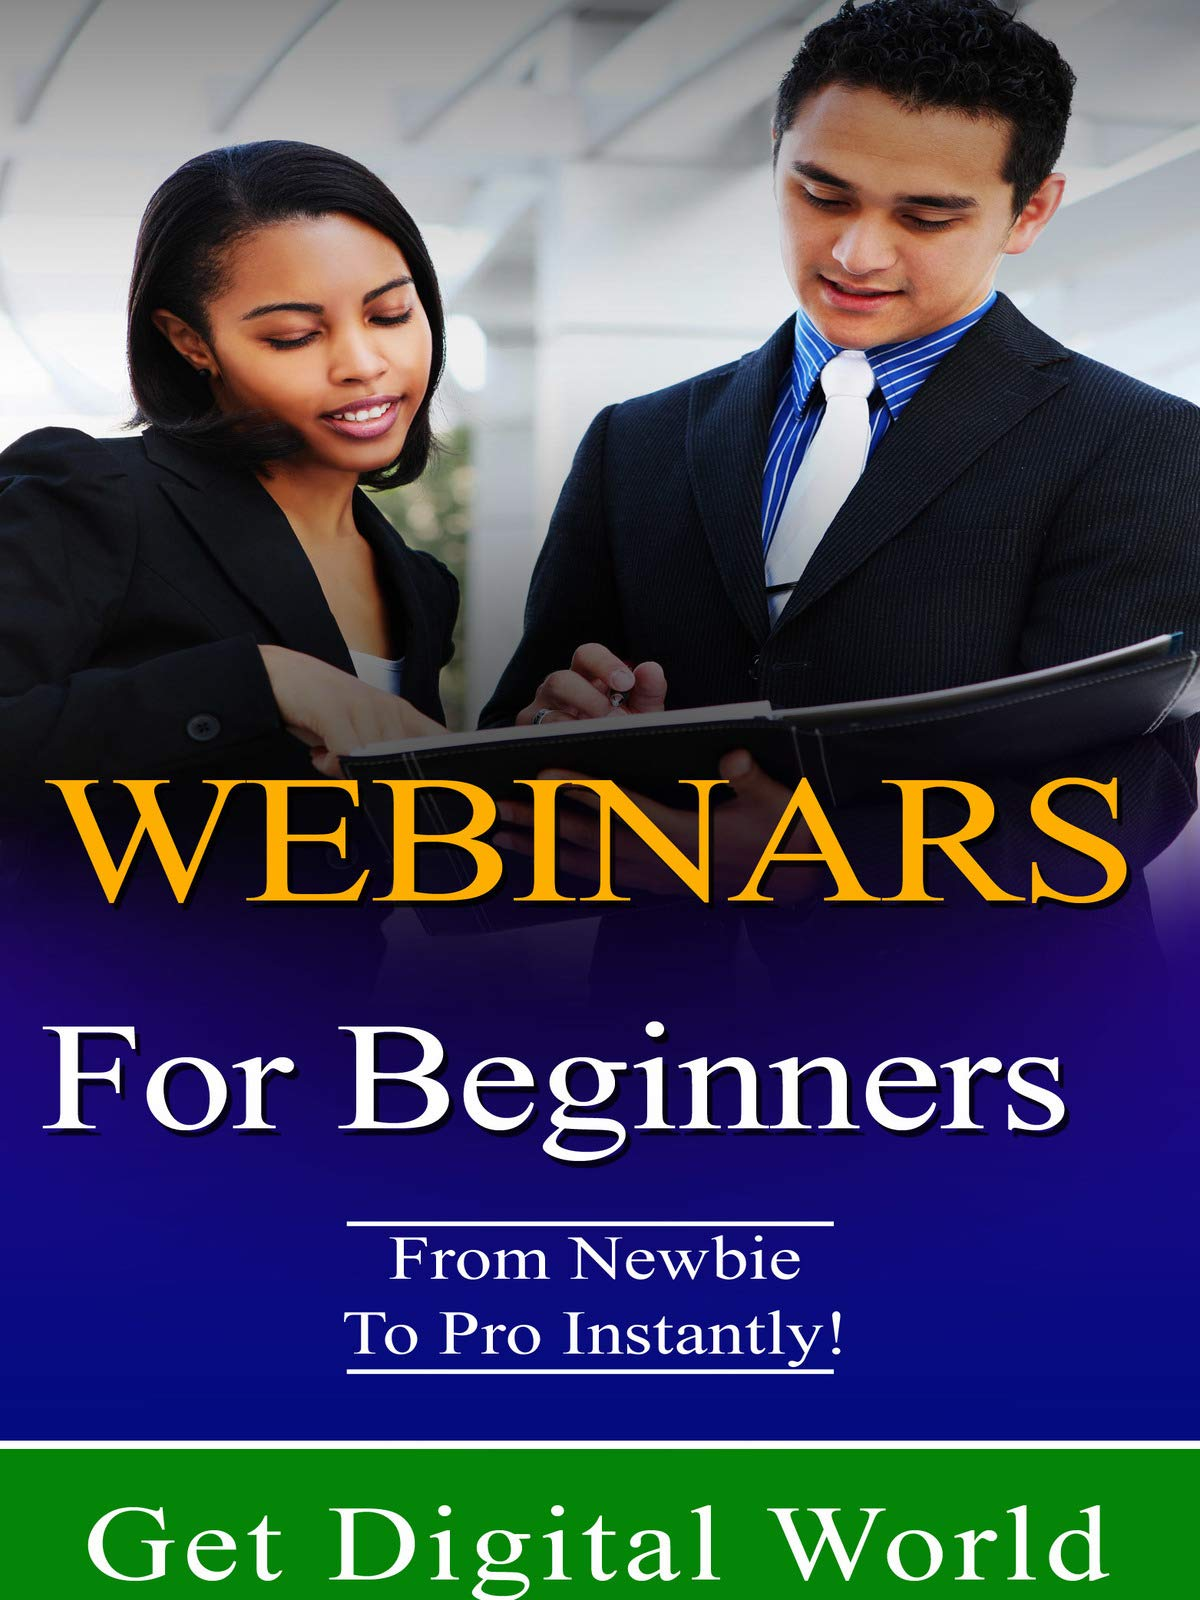 Webinars For Beginners: From Newbie To Pro Instantly on Amazon Prime Video UK